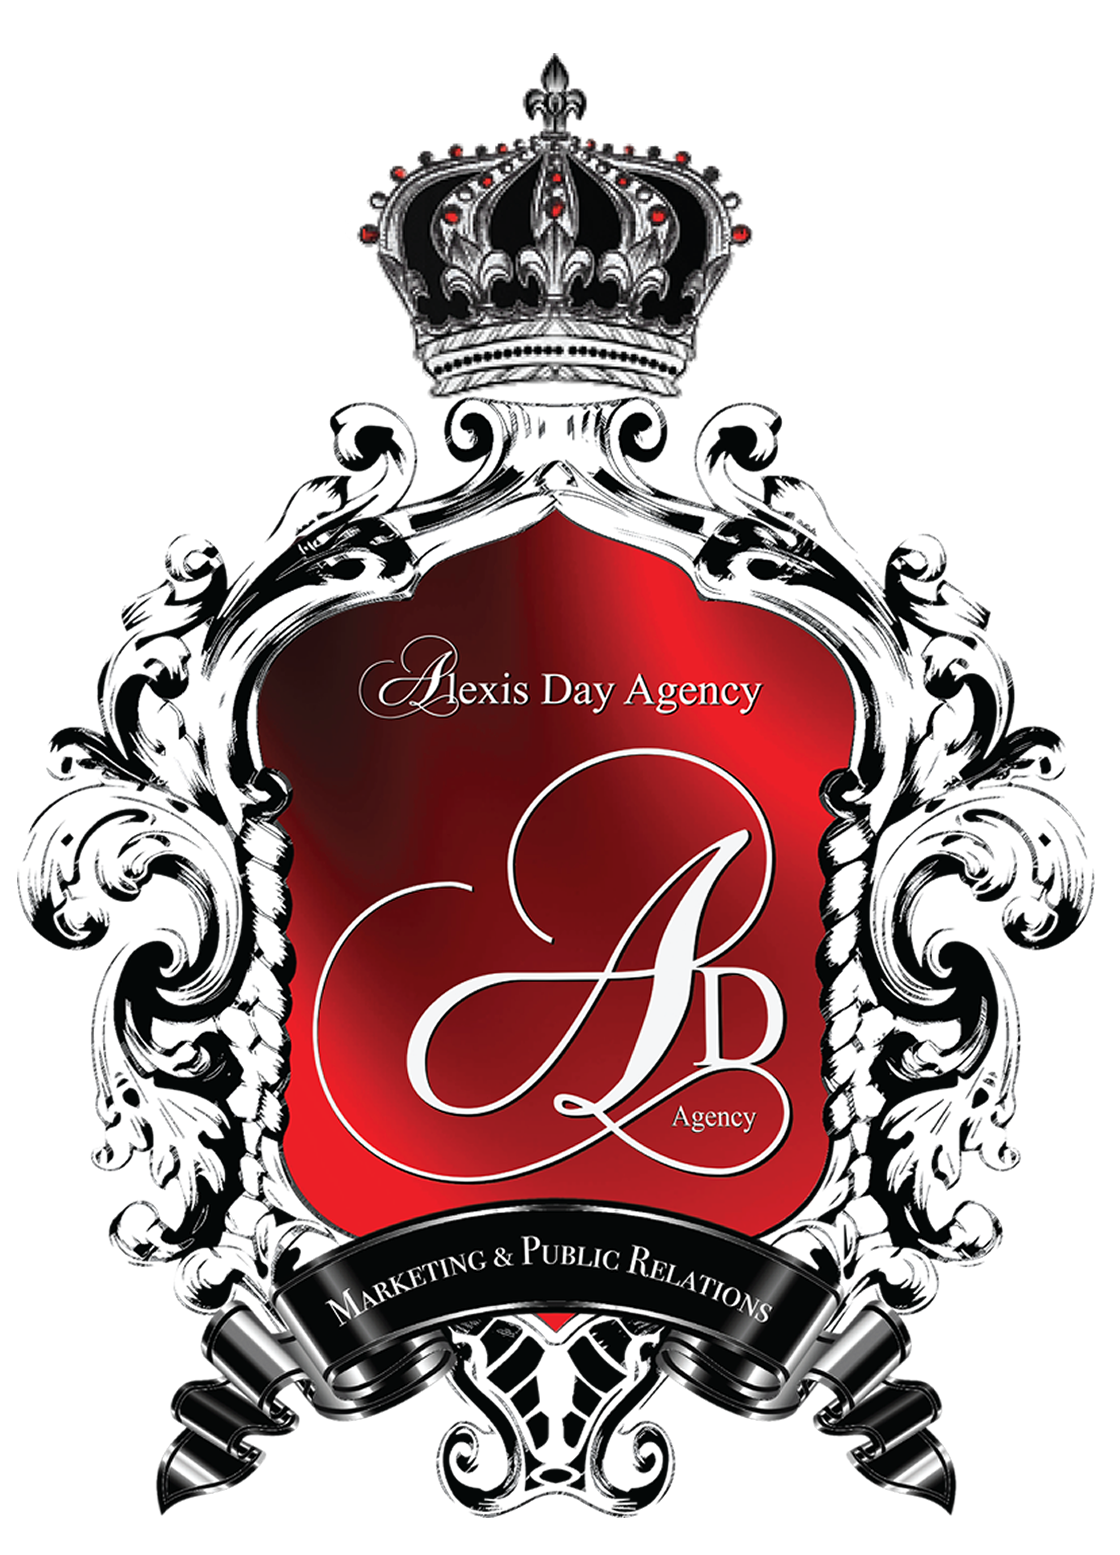 Alexis Day Agency, Luxury Brand Marketing/PR